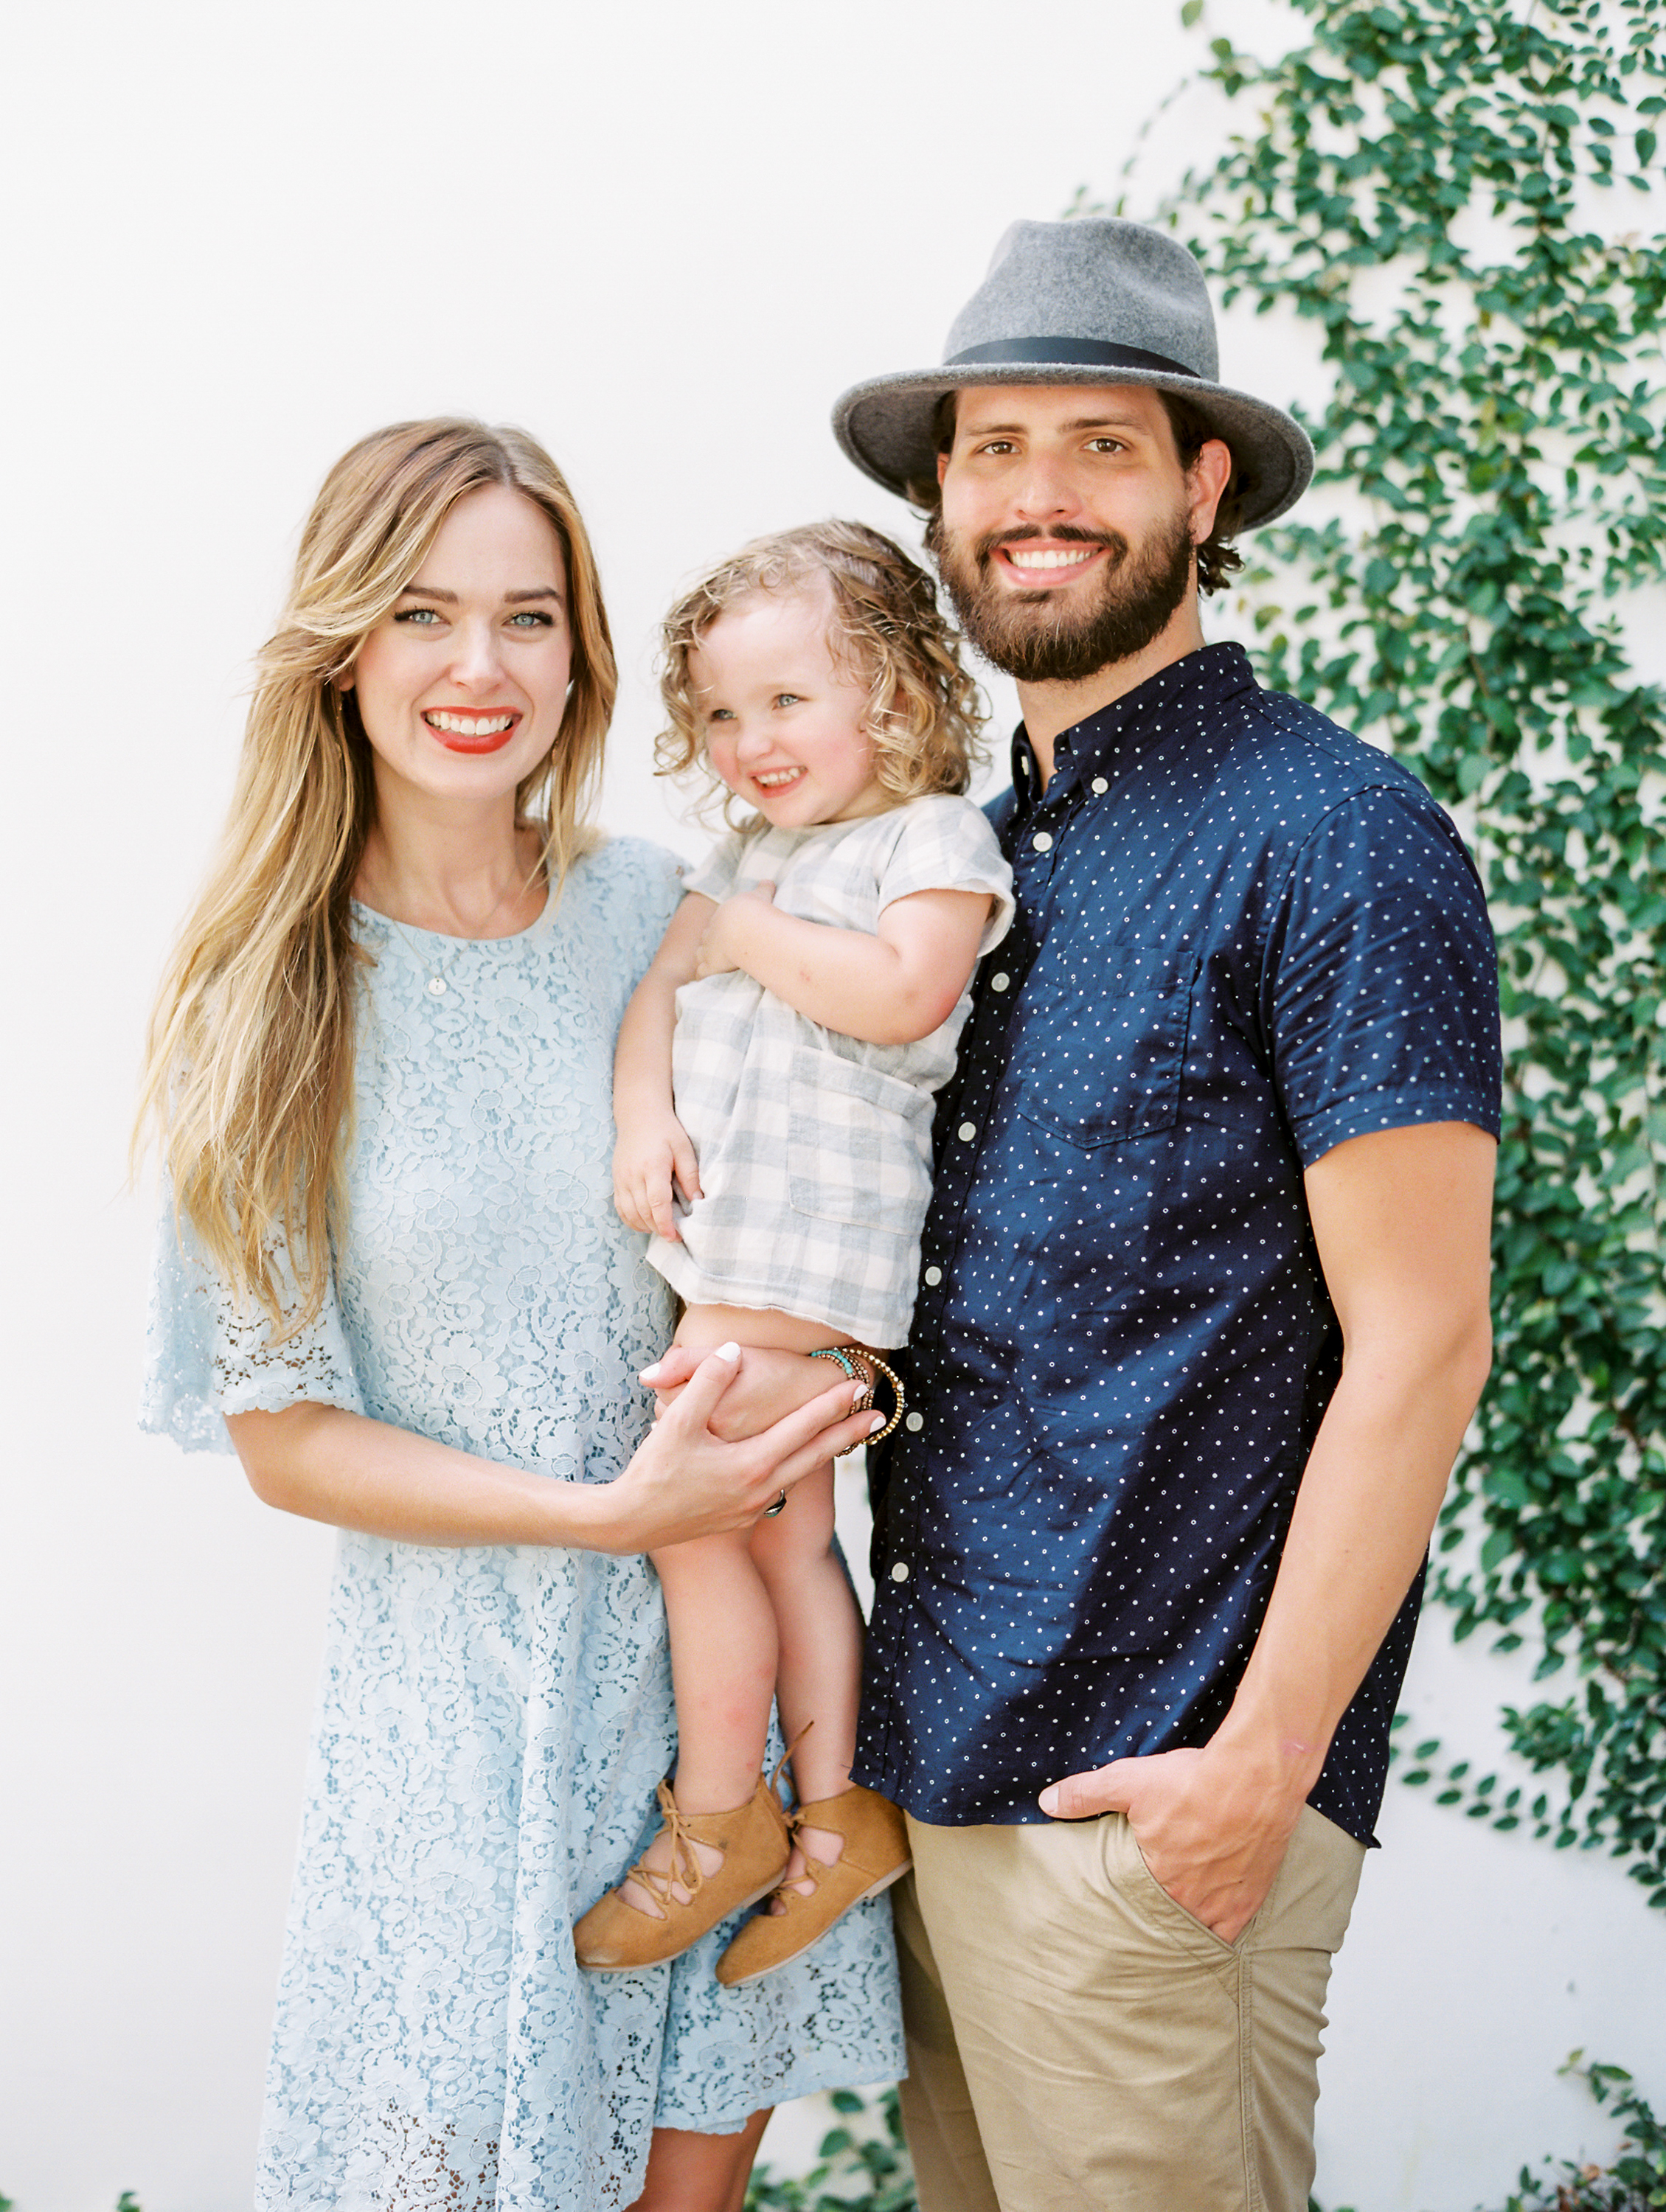 What to wear for beach family pictures? | Kaylie B. Poplin Photography | Rosemary Beach, Florida photographer